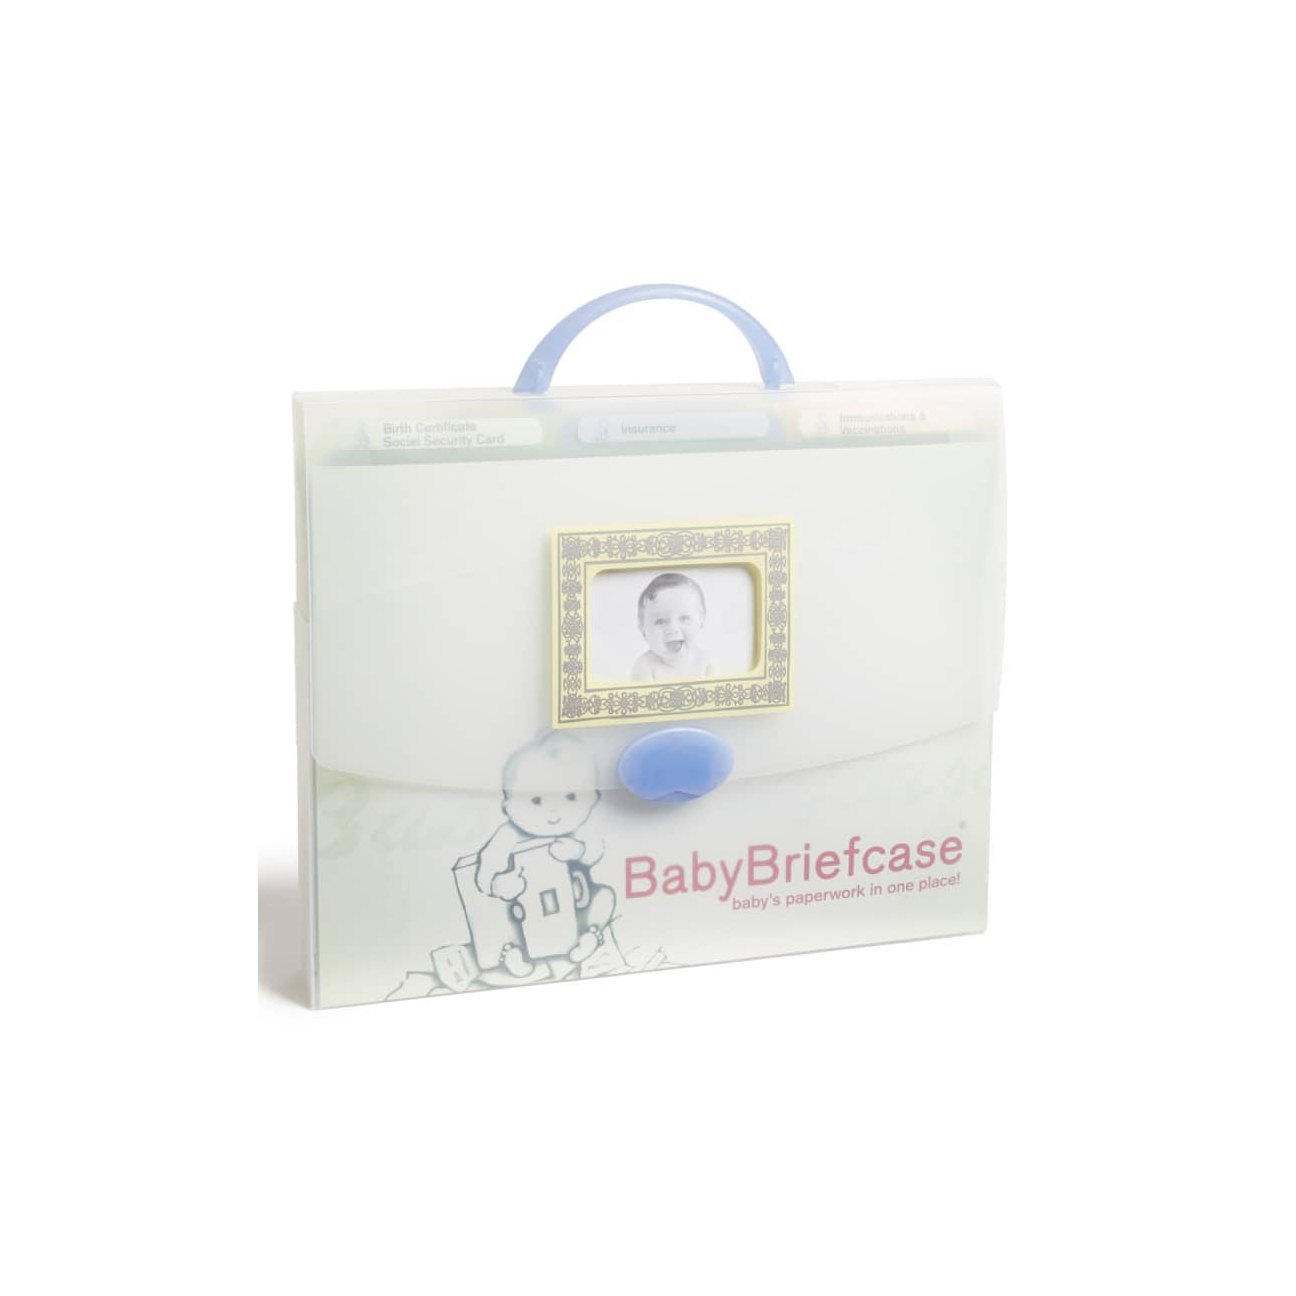 BabyBriefcase Document Organizer